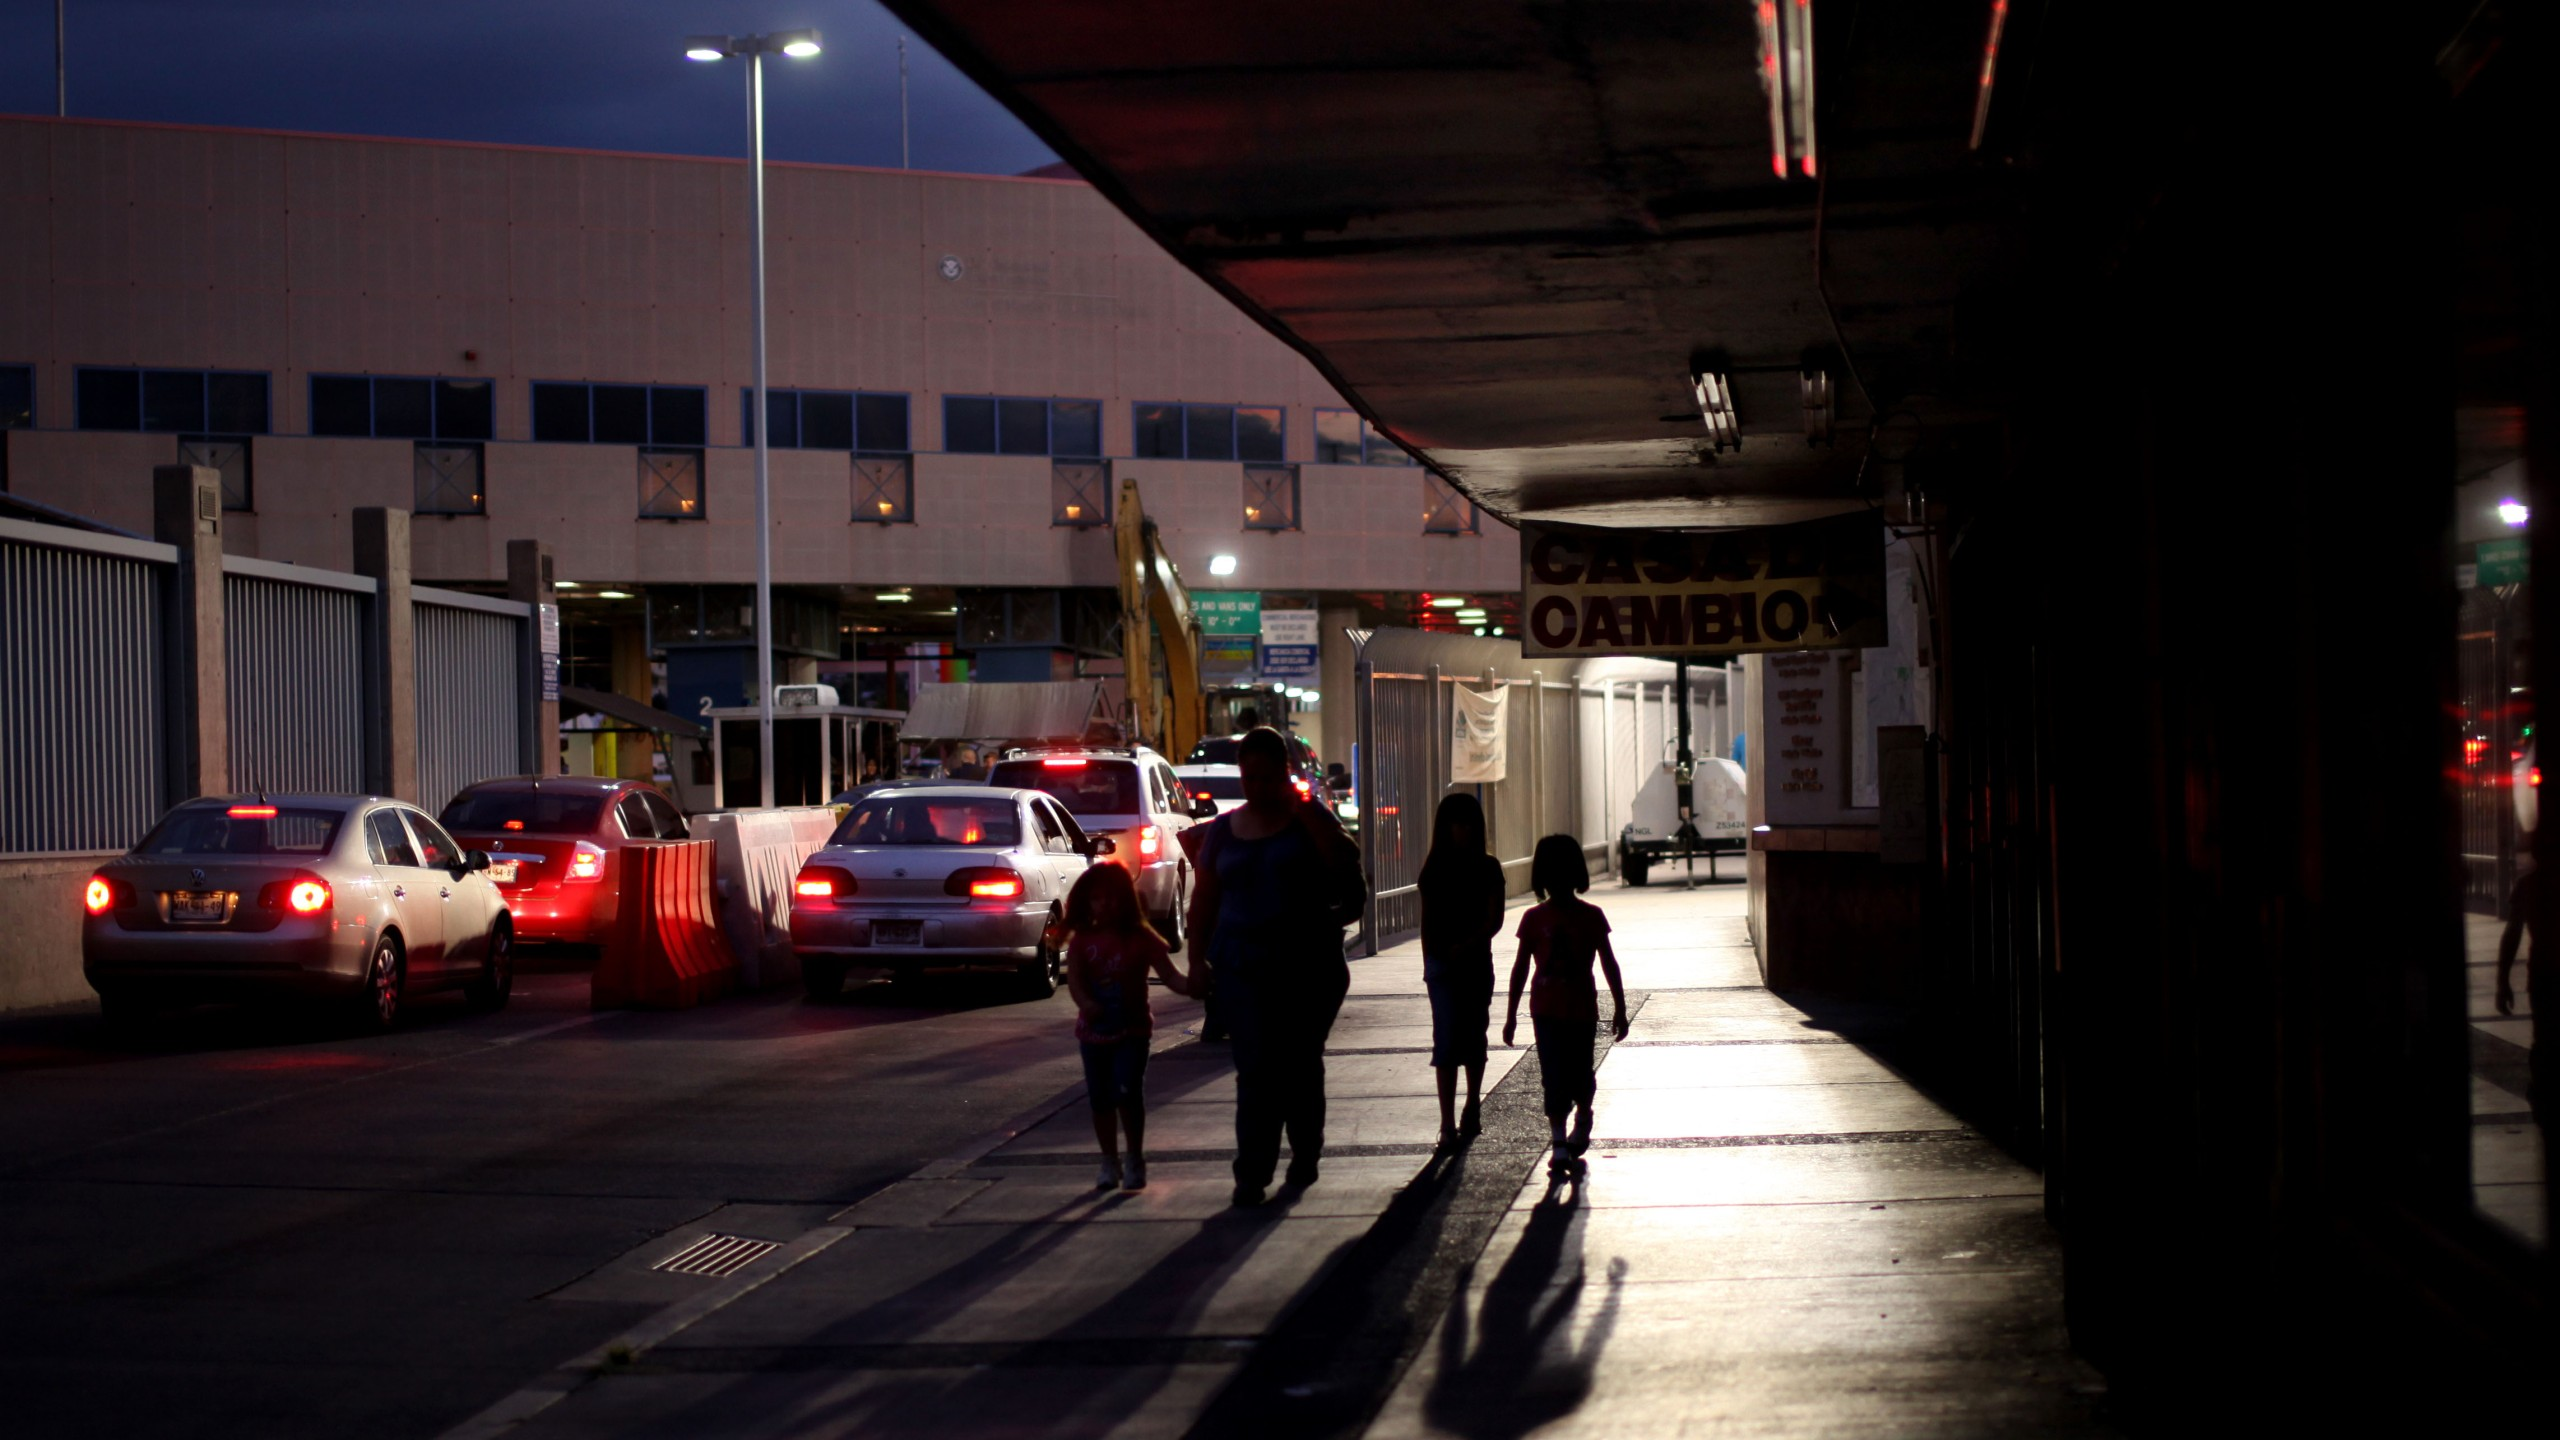 Pedestrians from Mexico leave after going through customs at the Nogales port of entry in Arizona on July 7, 2012. (Credit: Sandy Huffaker / Getty Images)